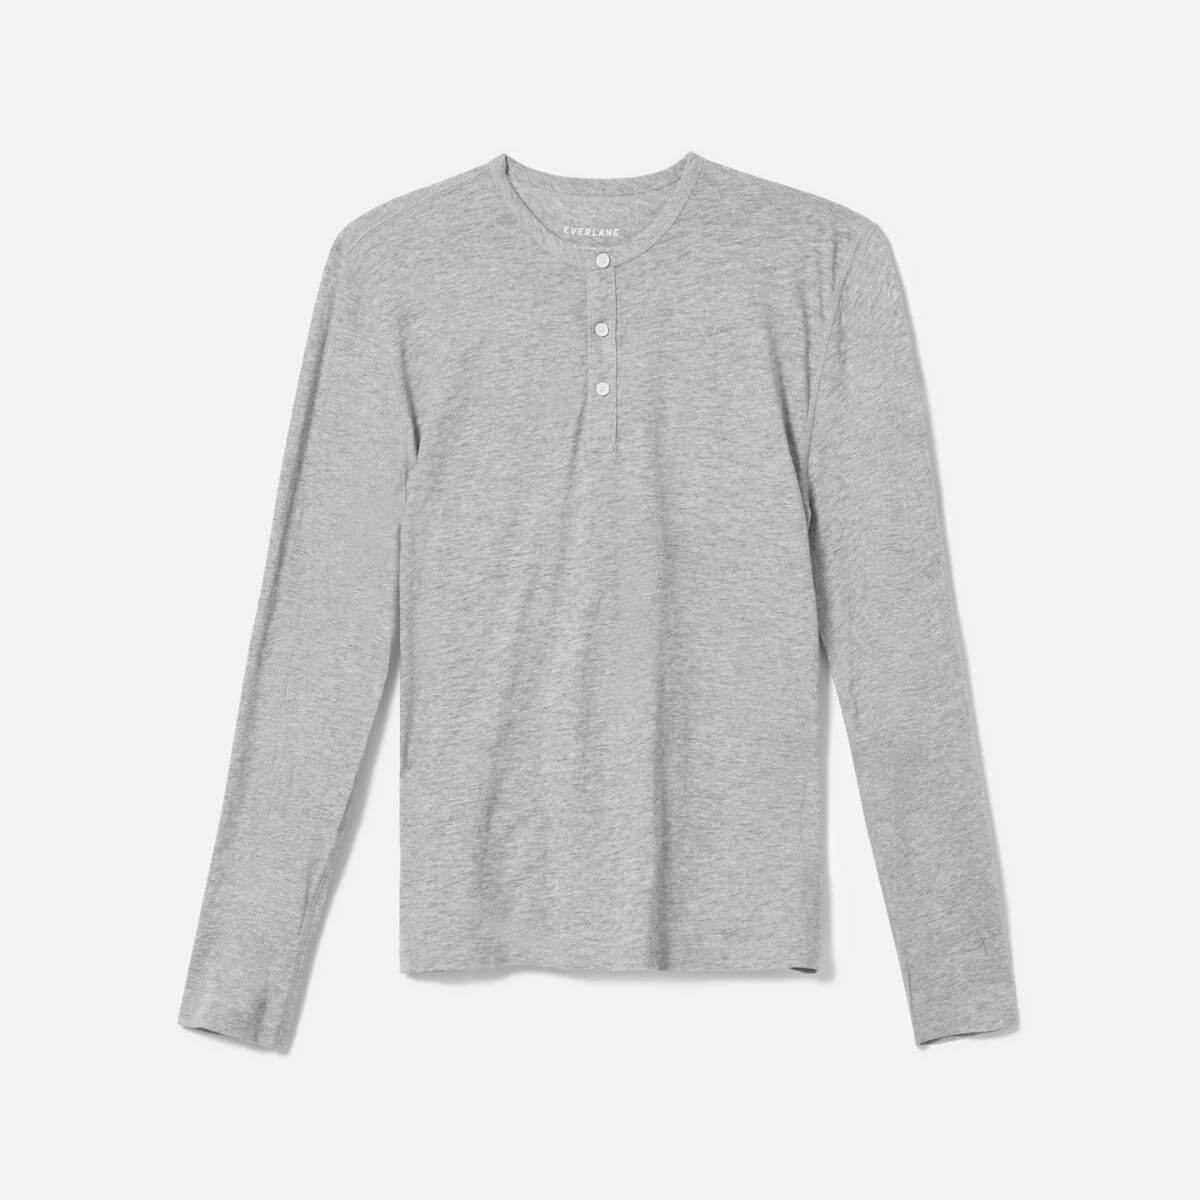 Grey long-sleeve henley shirt.